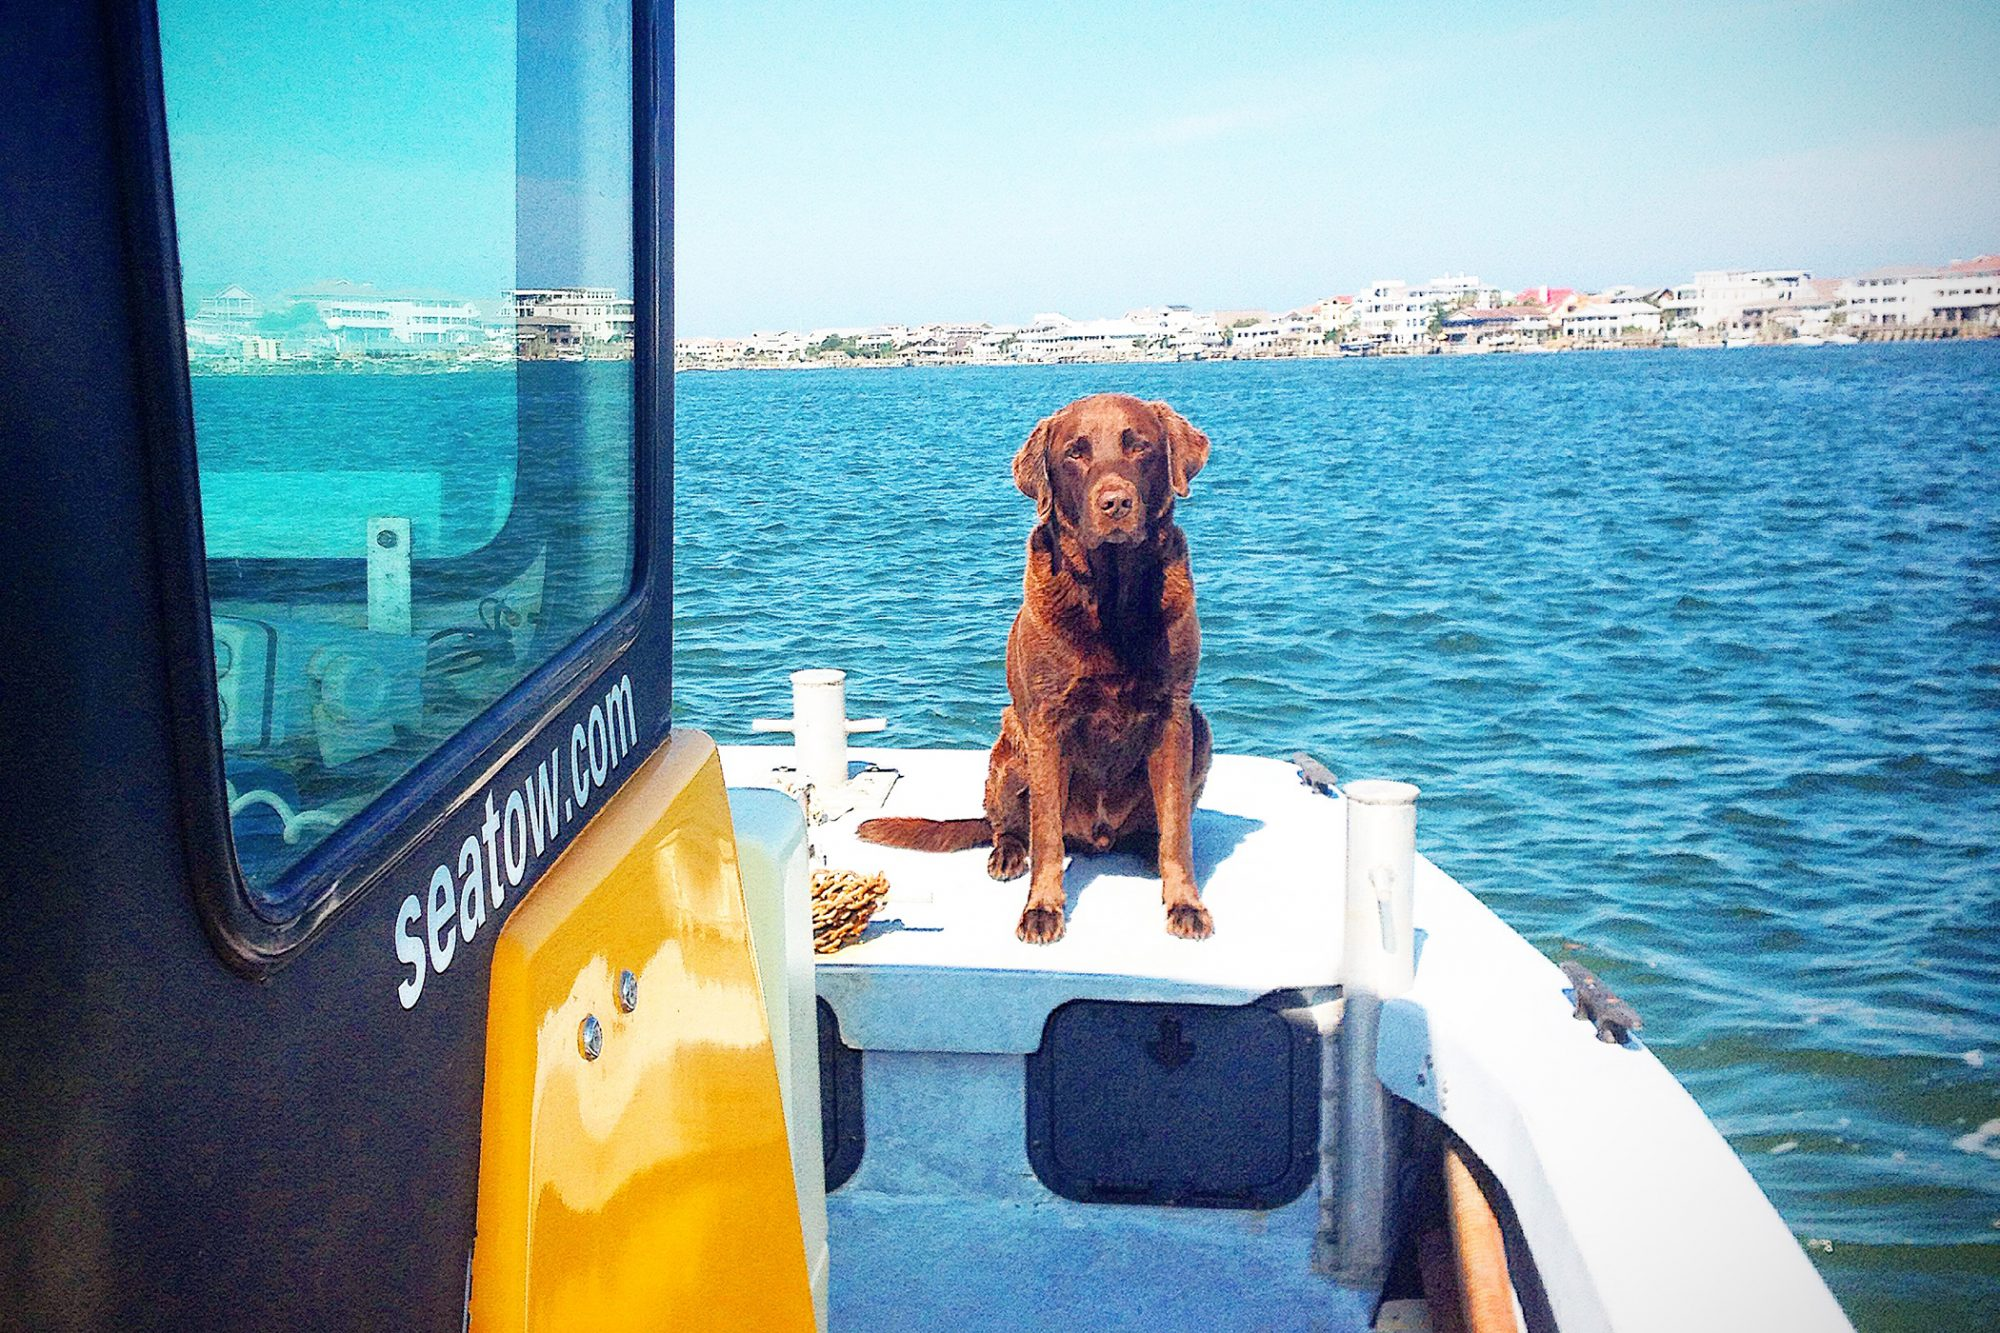 dog on Sea Tow boat with Wrightsville Beach in the backgound